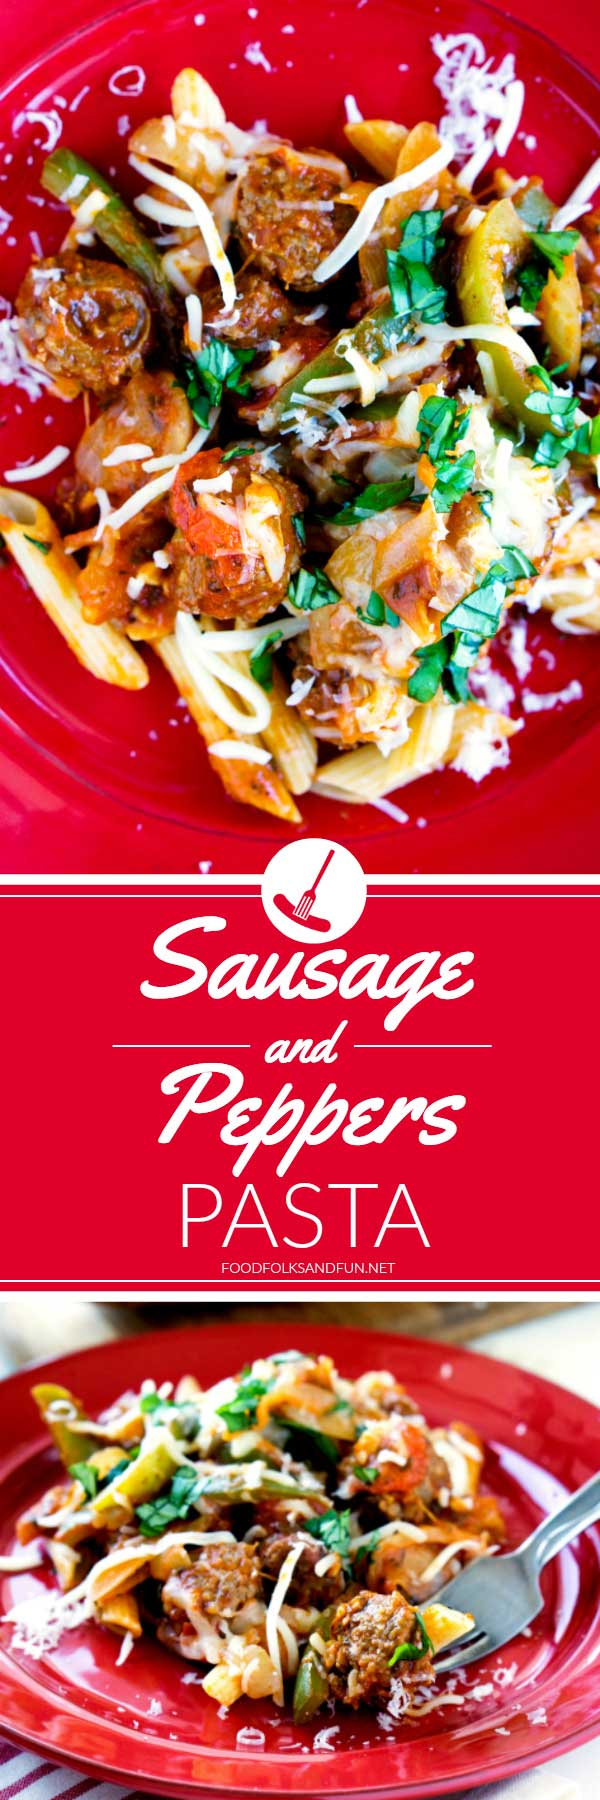 This Sausage and Peppers Pasta recipe is a quick & easy version of the slow-cooked Italian classic. It's vibrant, delicious, and great for busy weeknights! via @foodfolksandfun